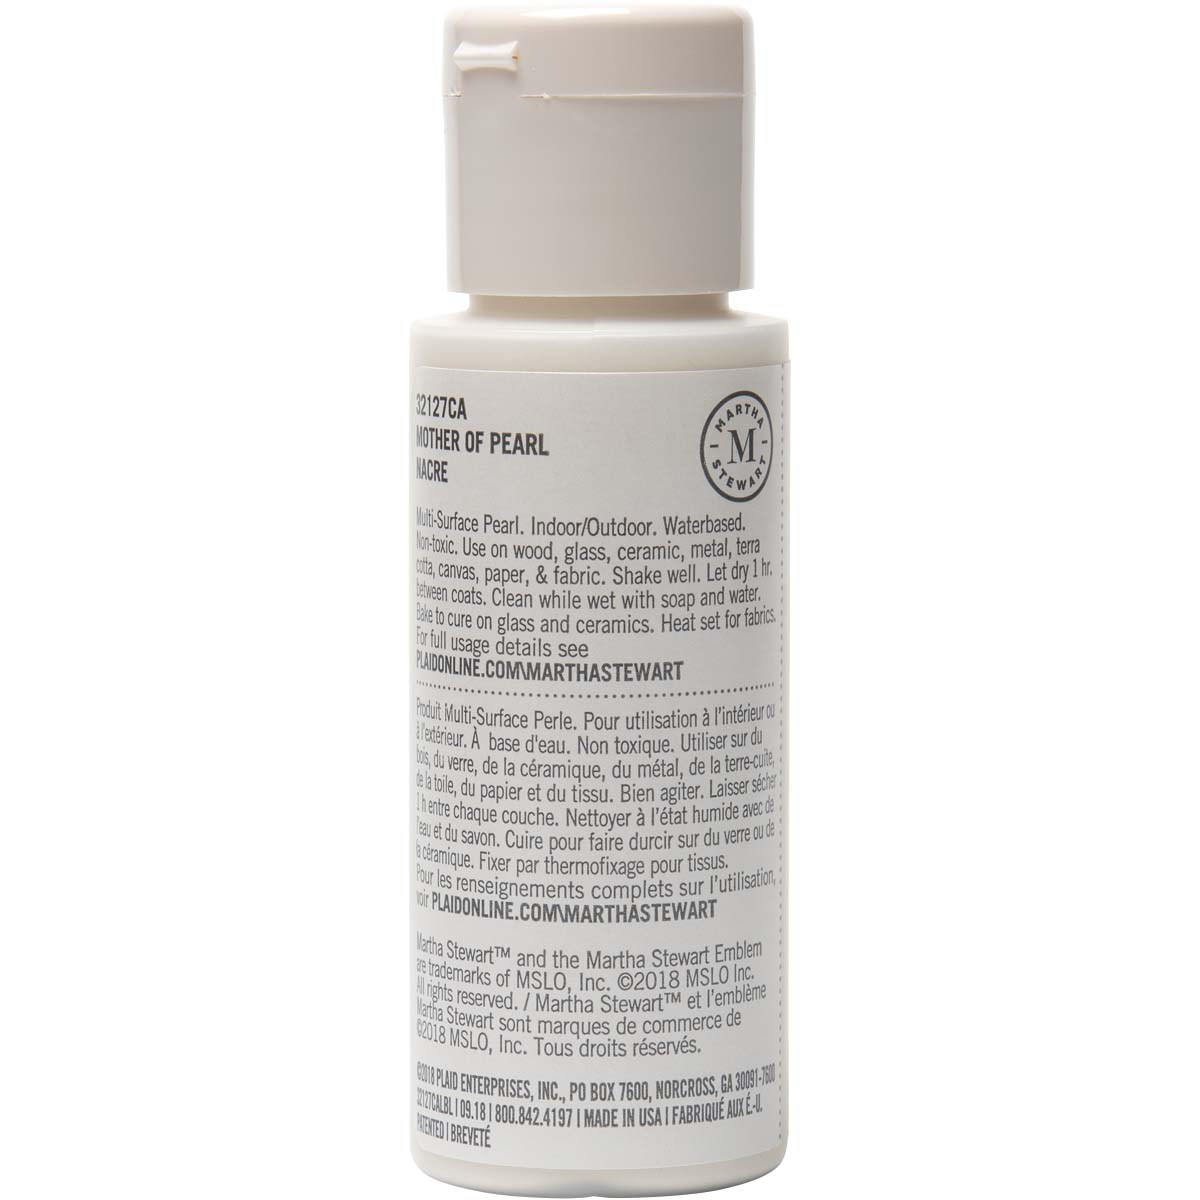 Martha Stewart® 2oz Multi-Surface Pearl Acrylic Craft Paint - Mother of Pearl